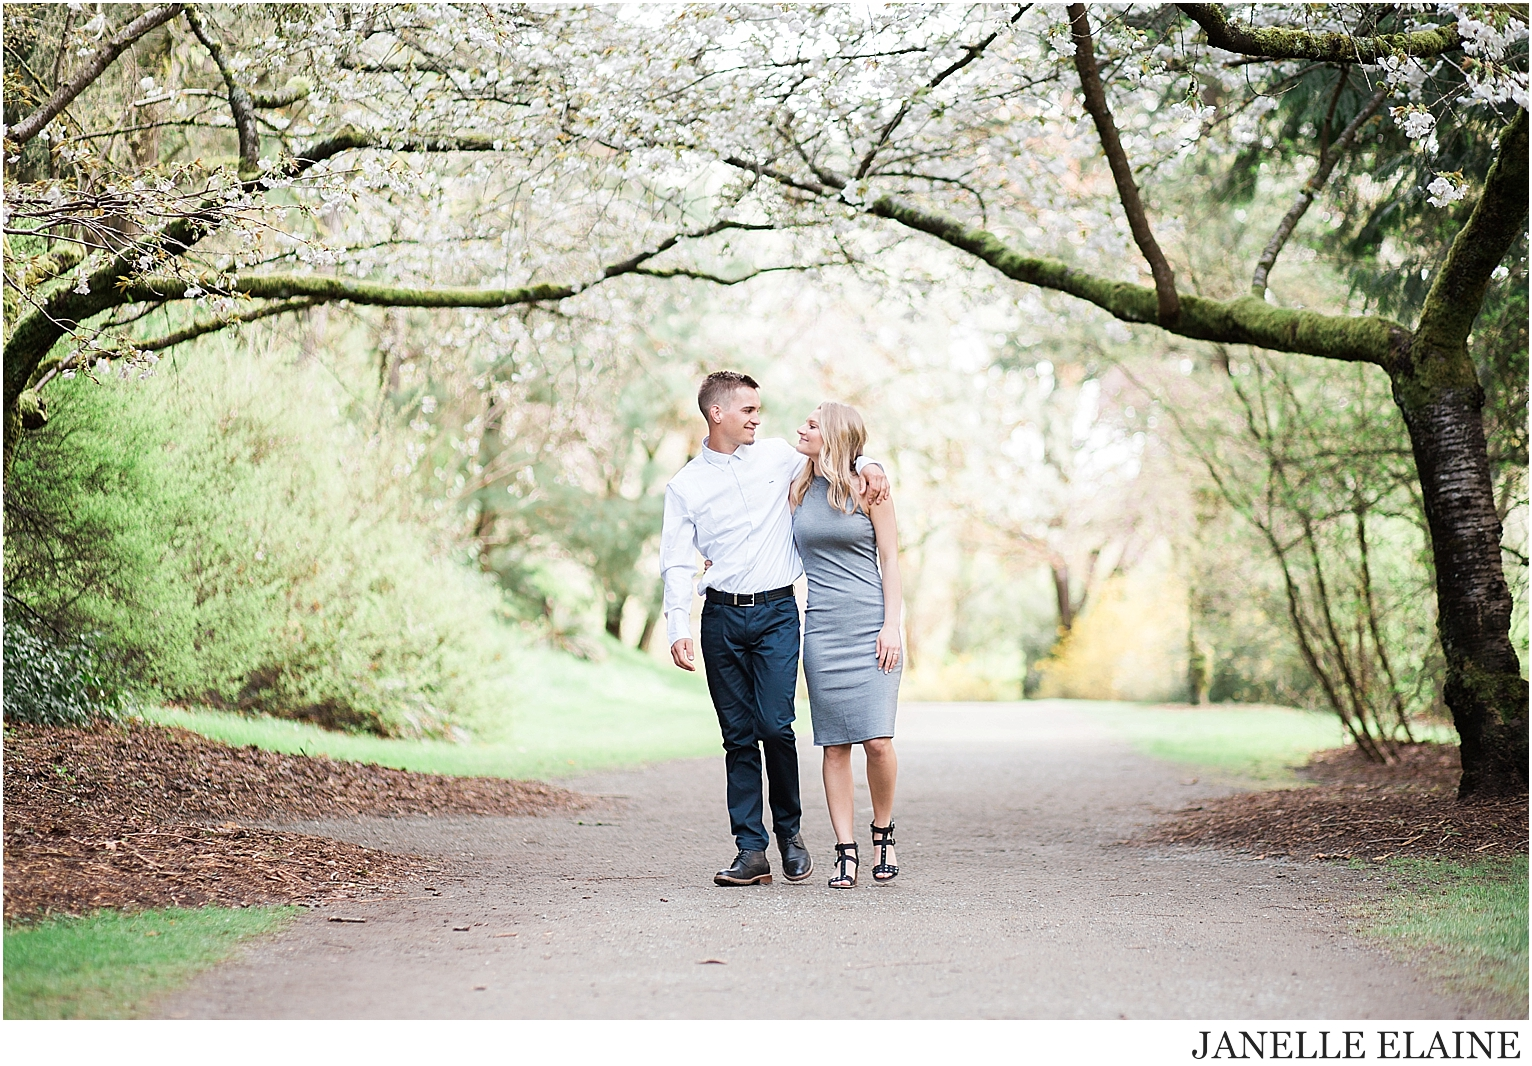 tricia and nate engagement photos-janelle elaine photography-47.jpg